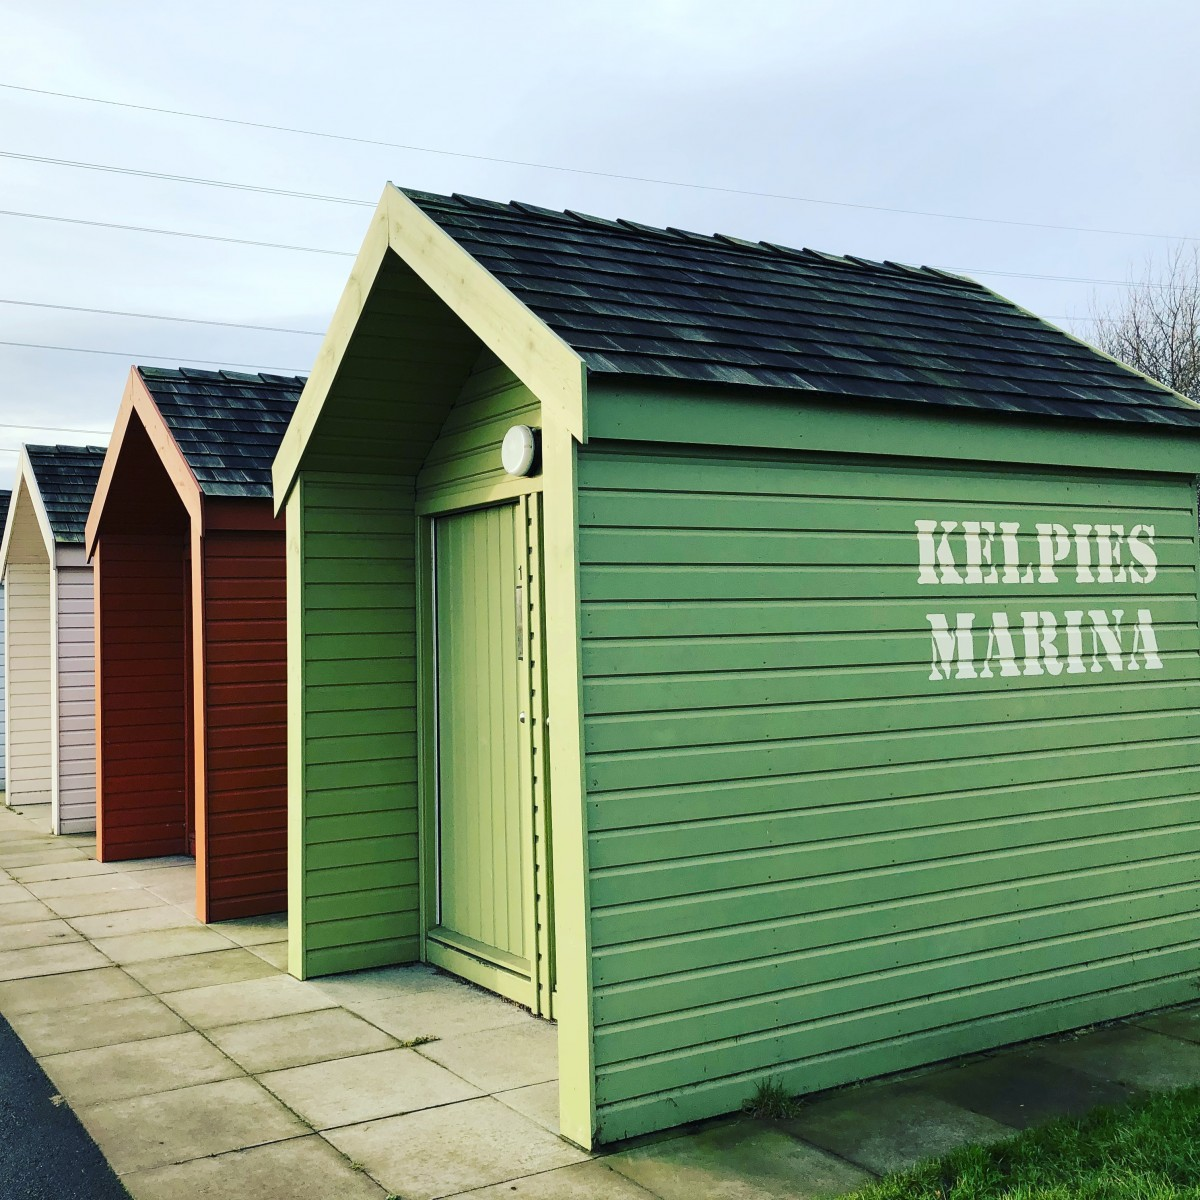 Beach Hut Life - The Kelpies Marina Beach Huts